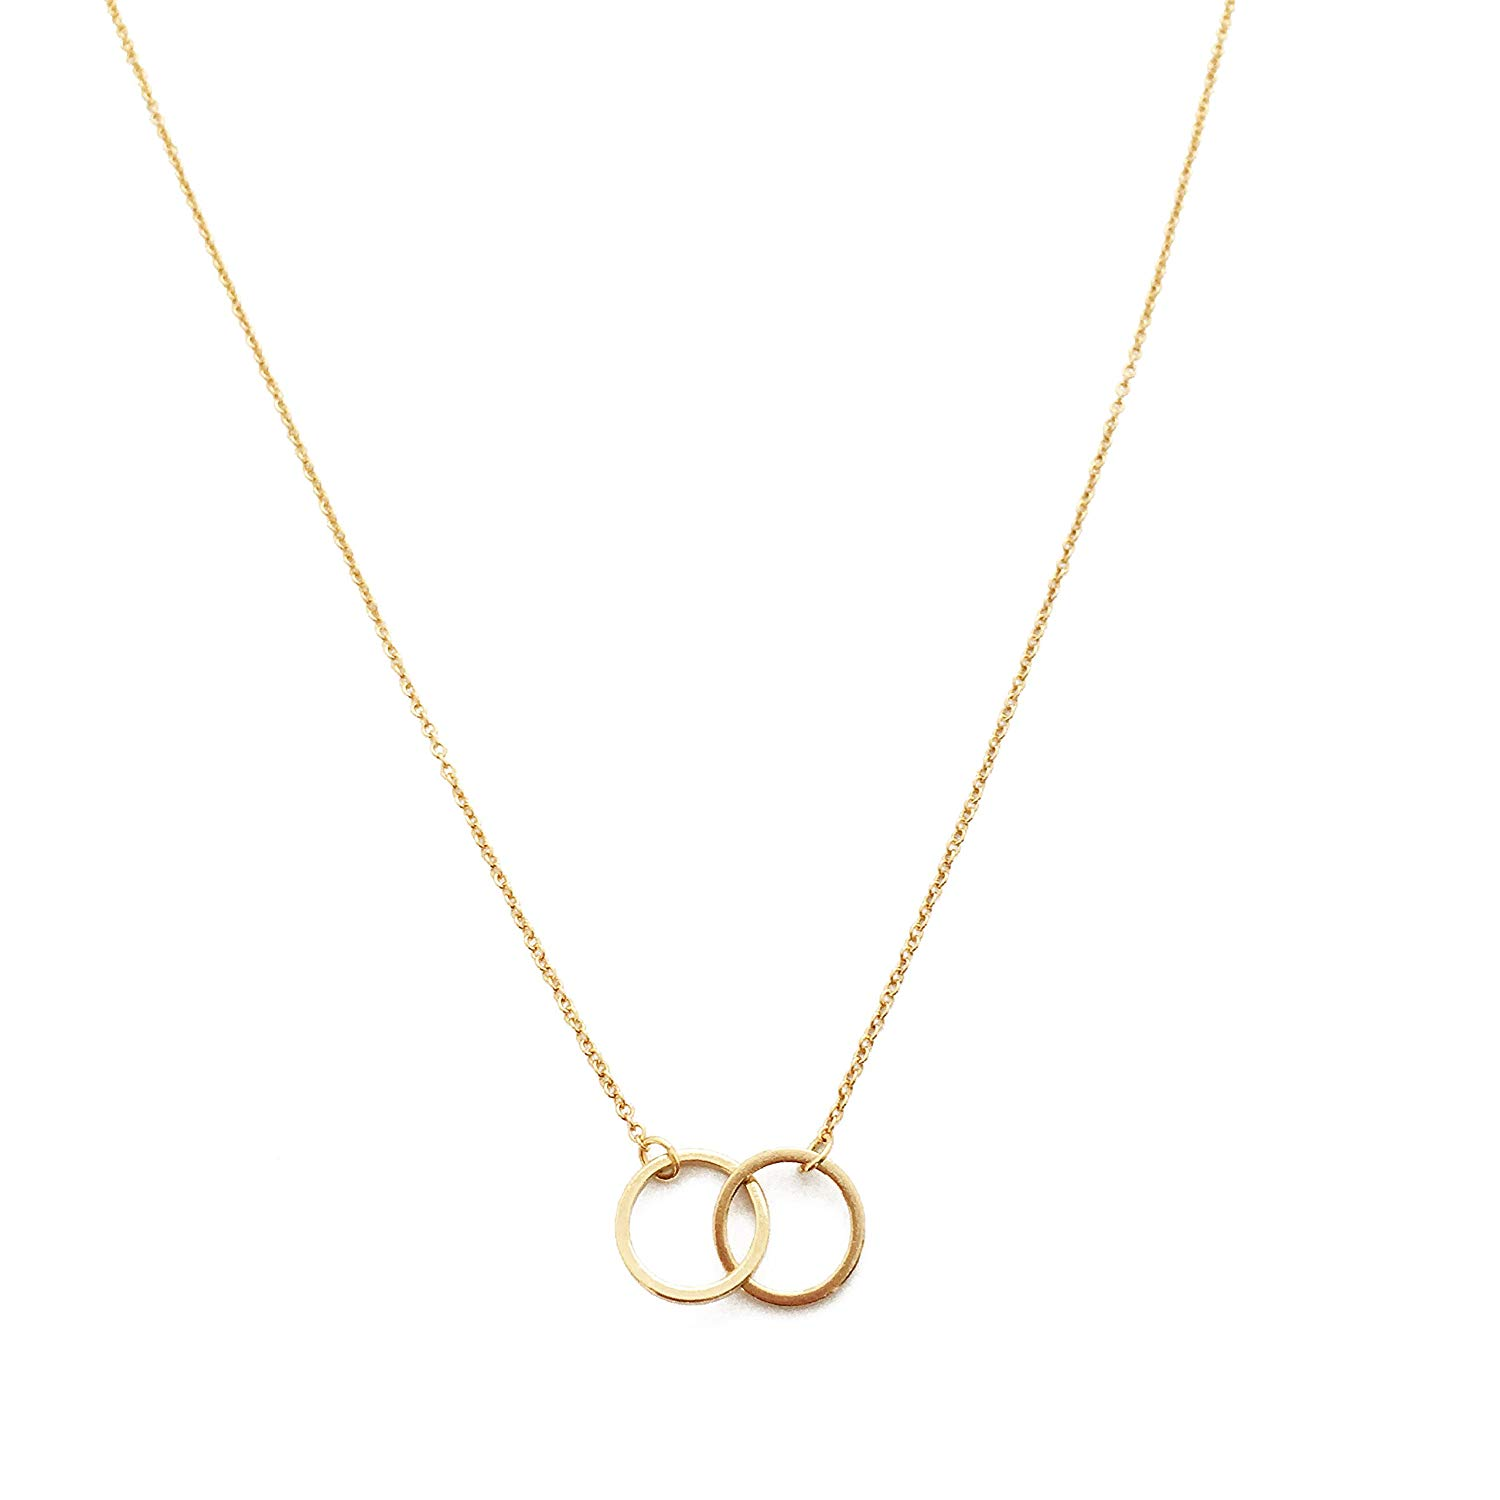 7b4389f81 Get Quotations · HONEYCAT Harmony Interlocking Circle Necklace in Gold,  Rose Gold, or Silver | Delicate Jewelry